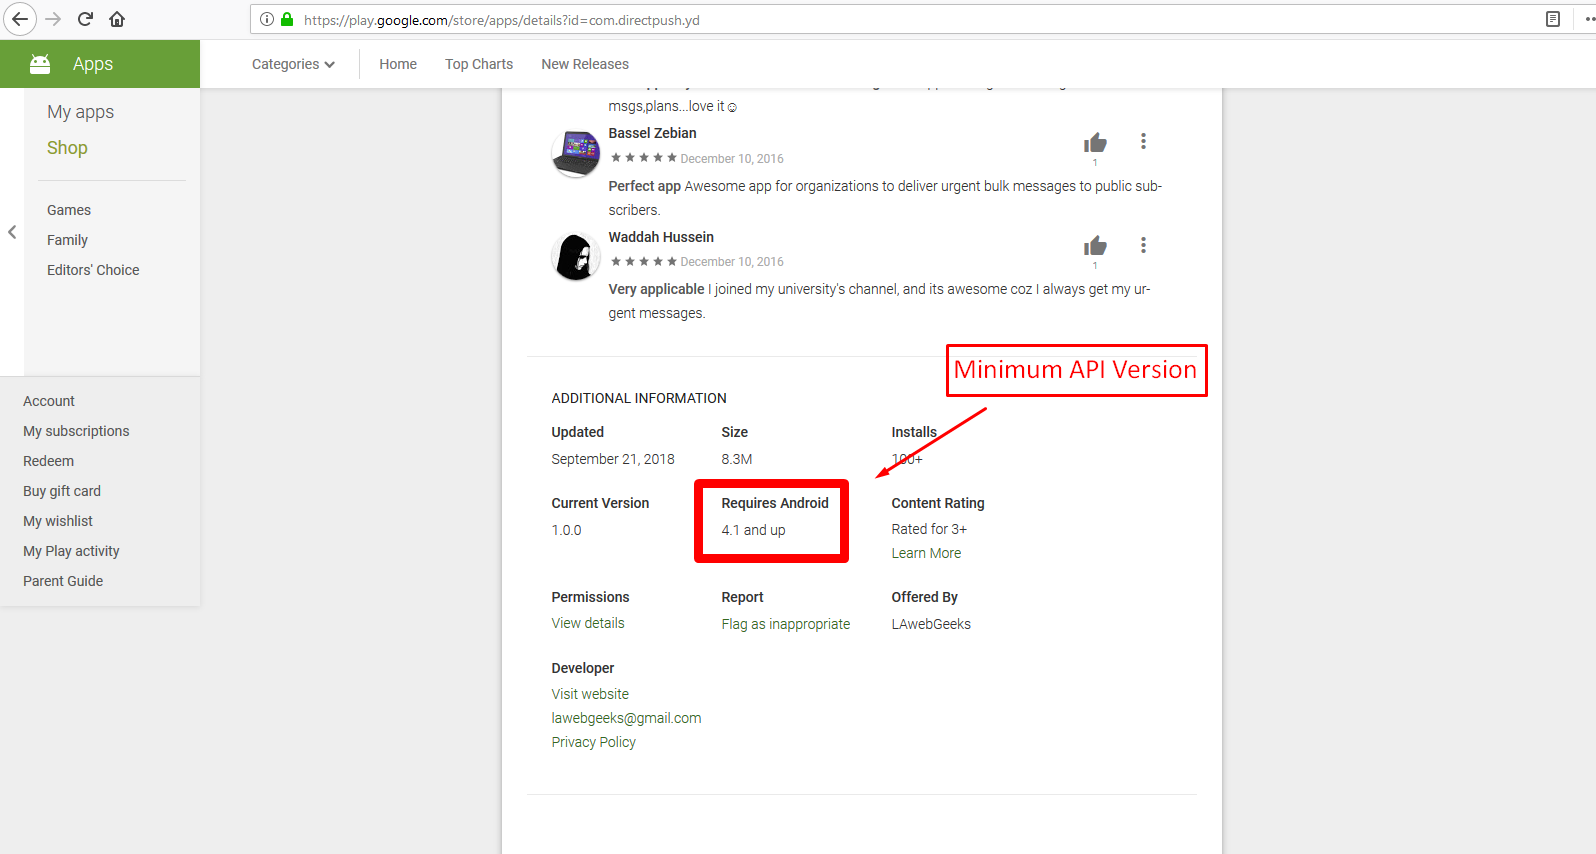 How to check the minimum API version of an app from the Play Store